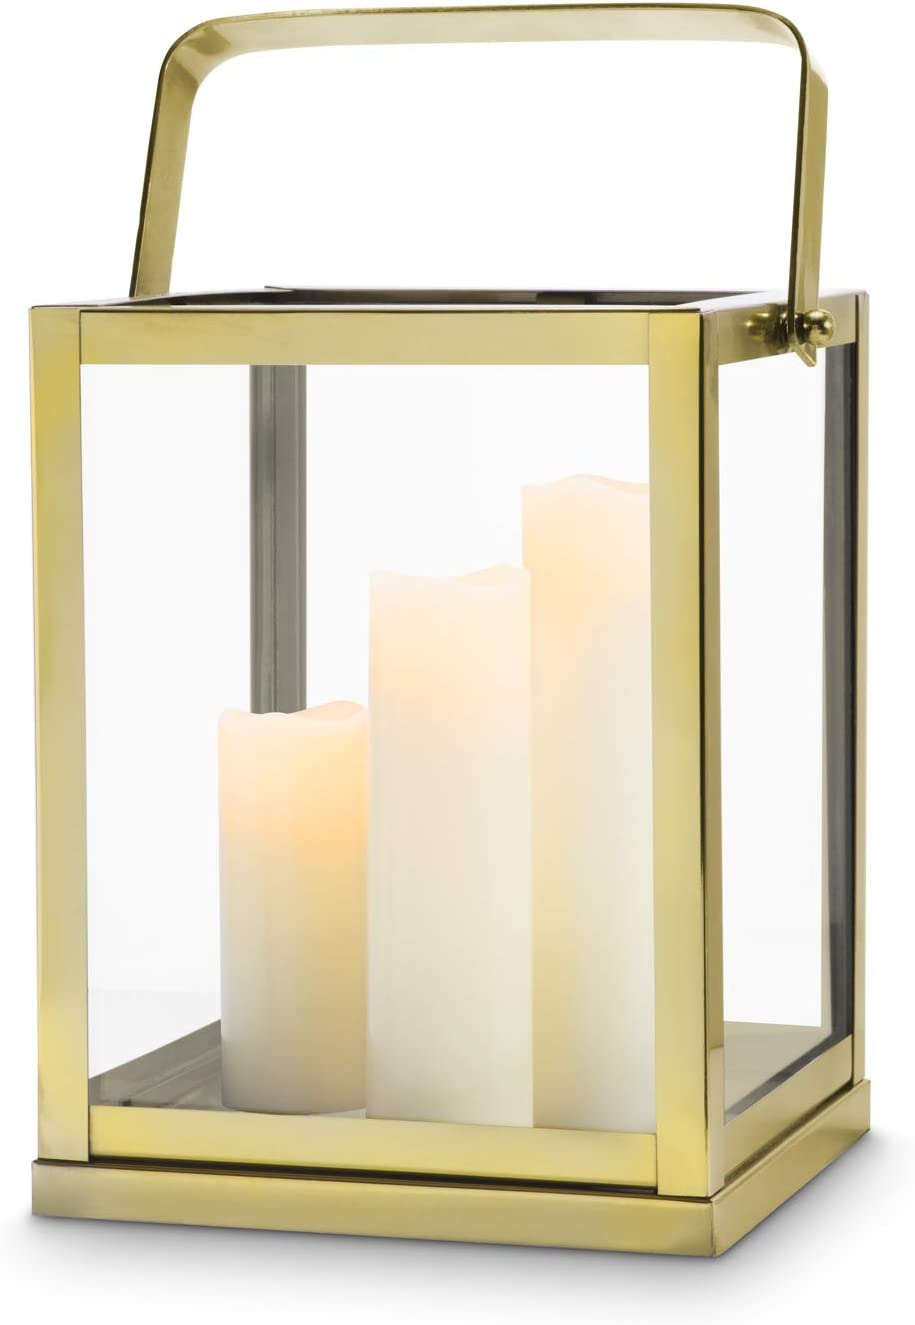 Lamplust Gold Lantern Candle Holder Centerpiece 11 Tall Glass Paneled Geometric Square Shape Decorative Lantern For Wedding Decor And Table Decoration Home Kitchen